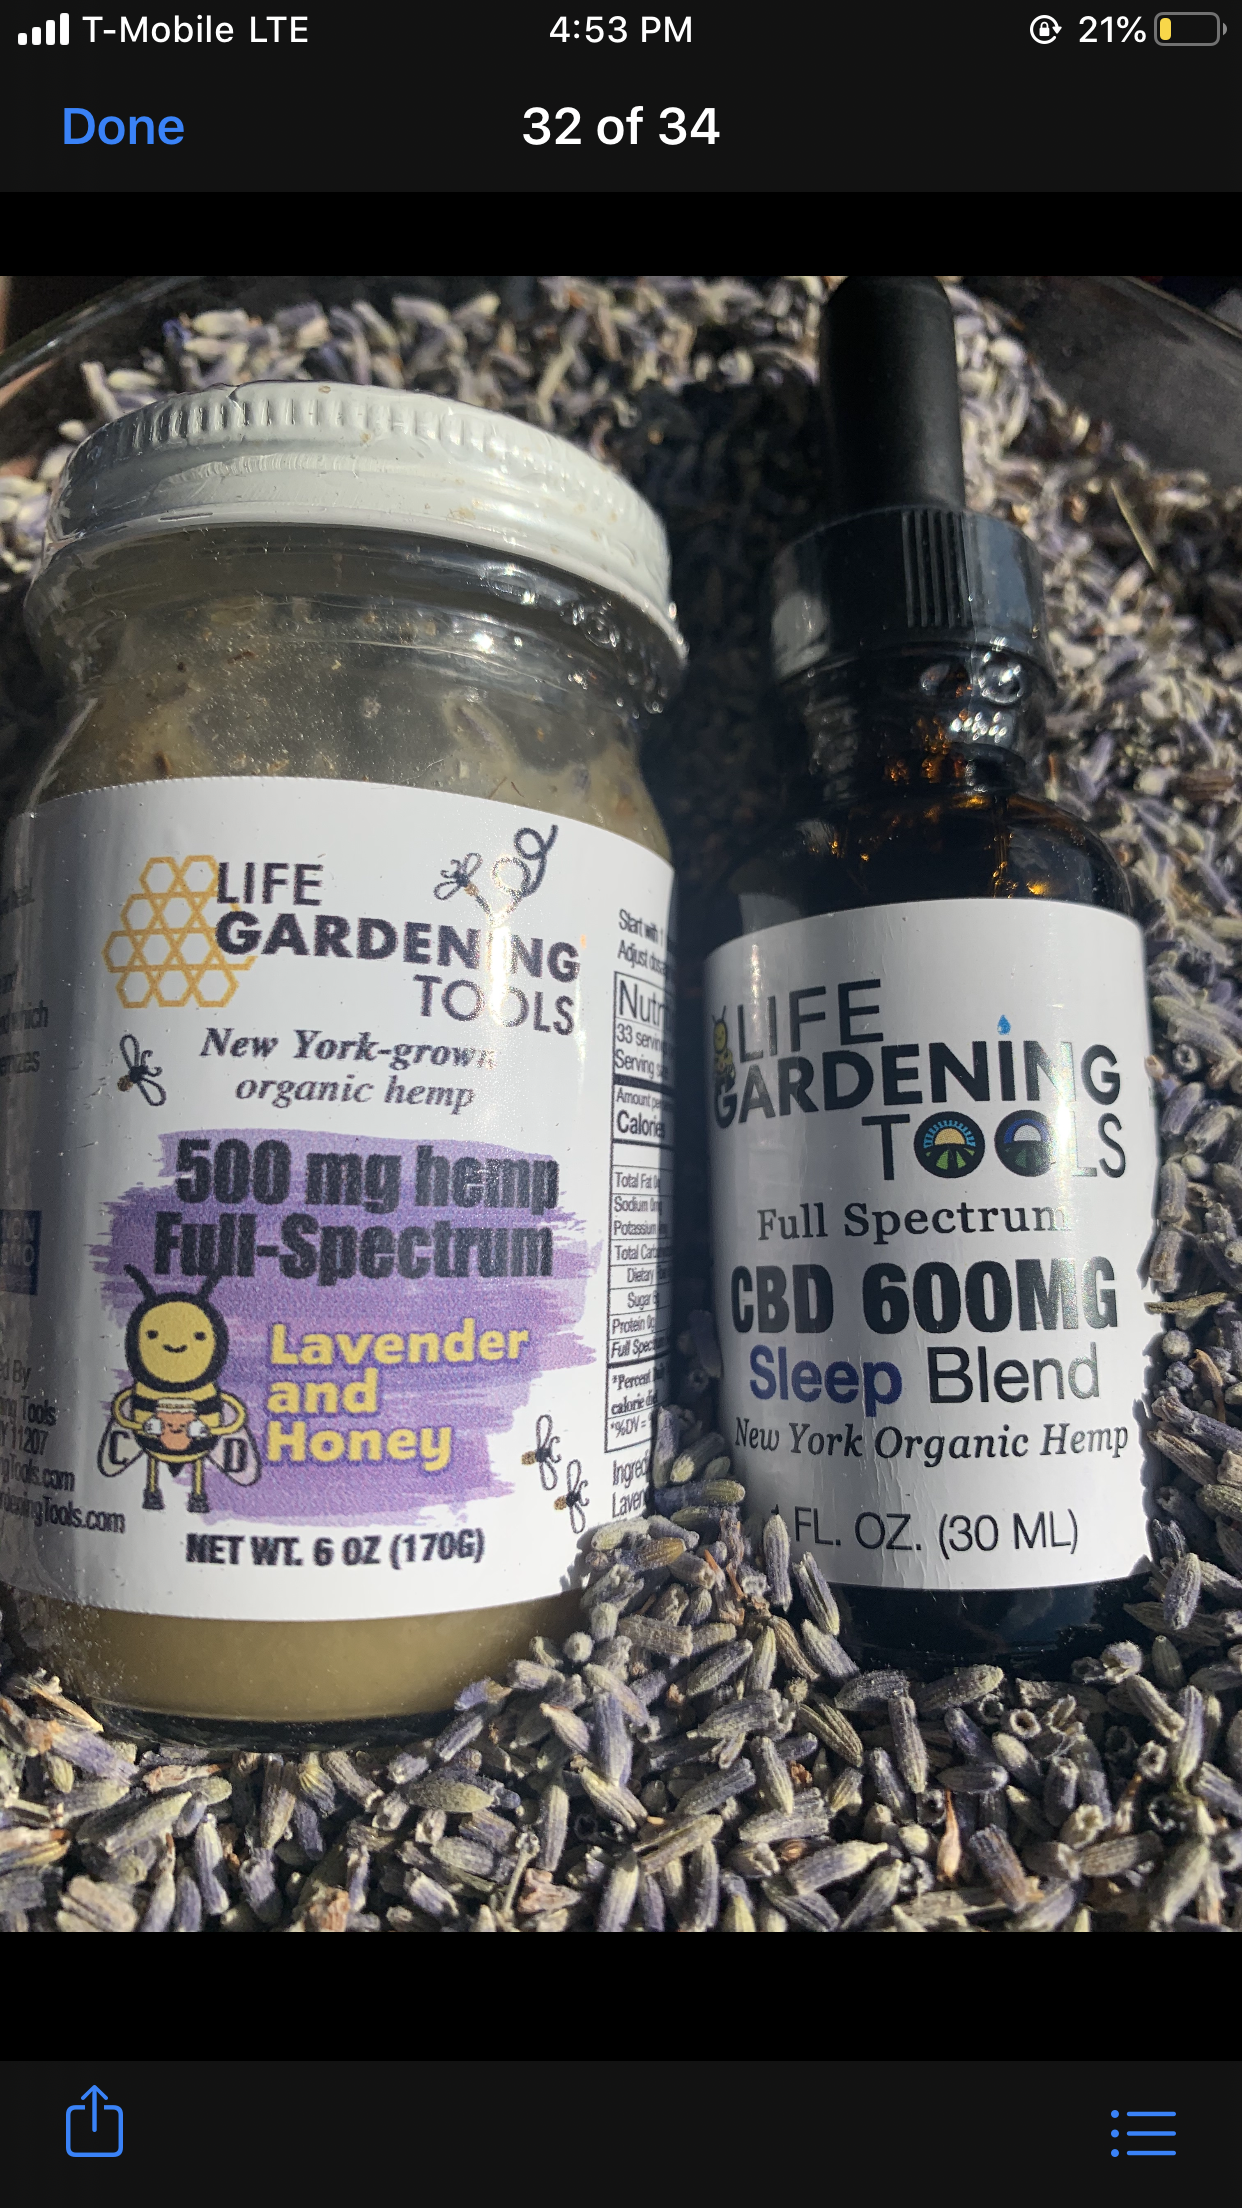 Lavender CBD Relaxation & Sleep Bundle - Life Gardening Tools LLC